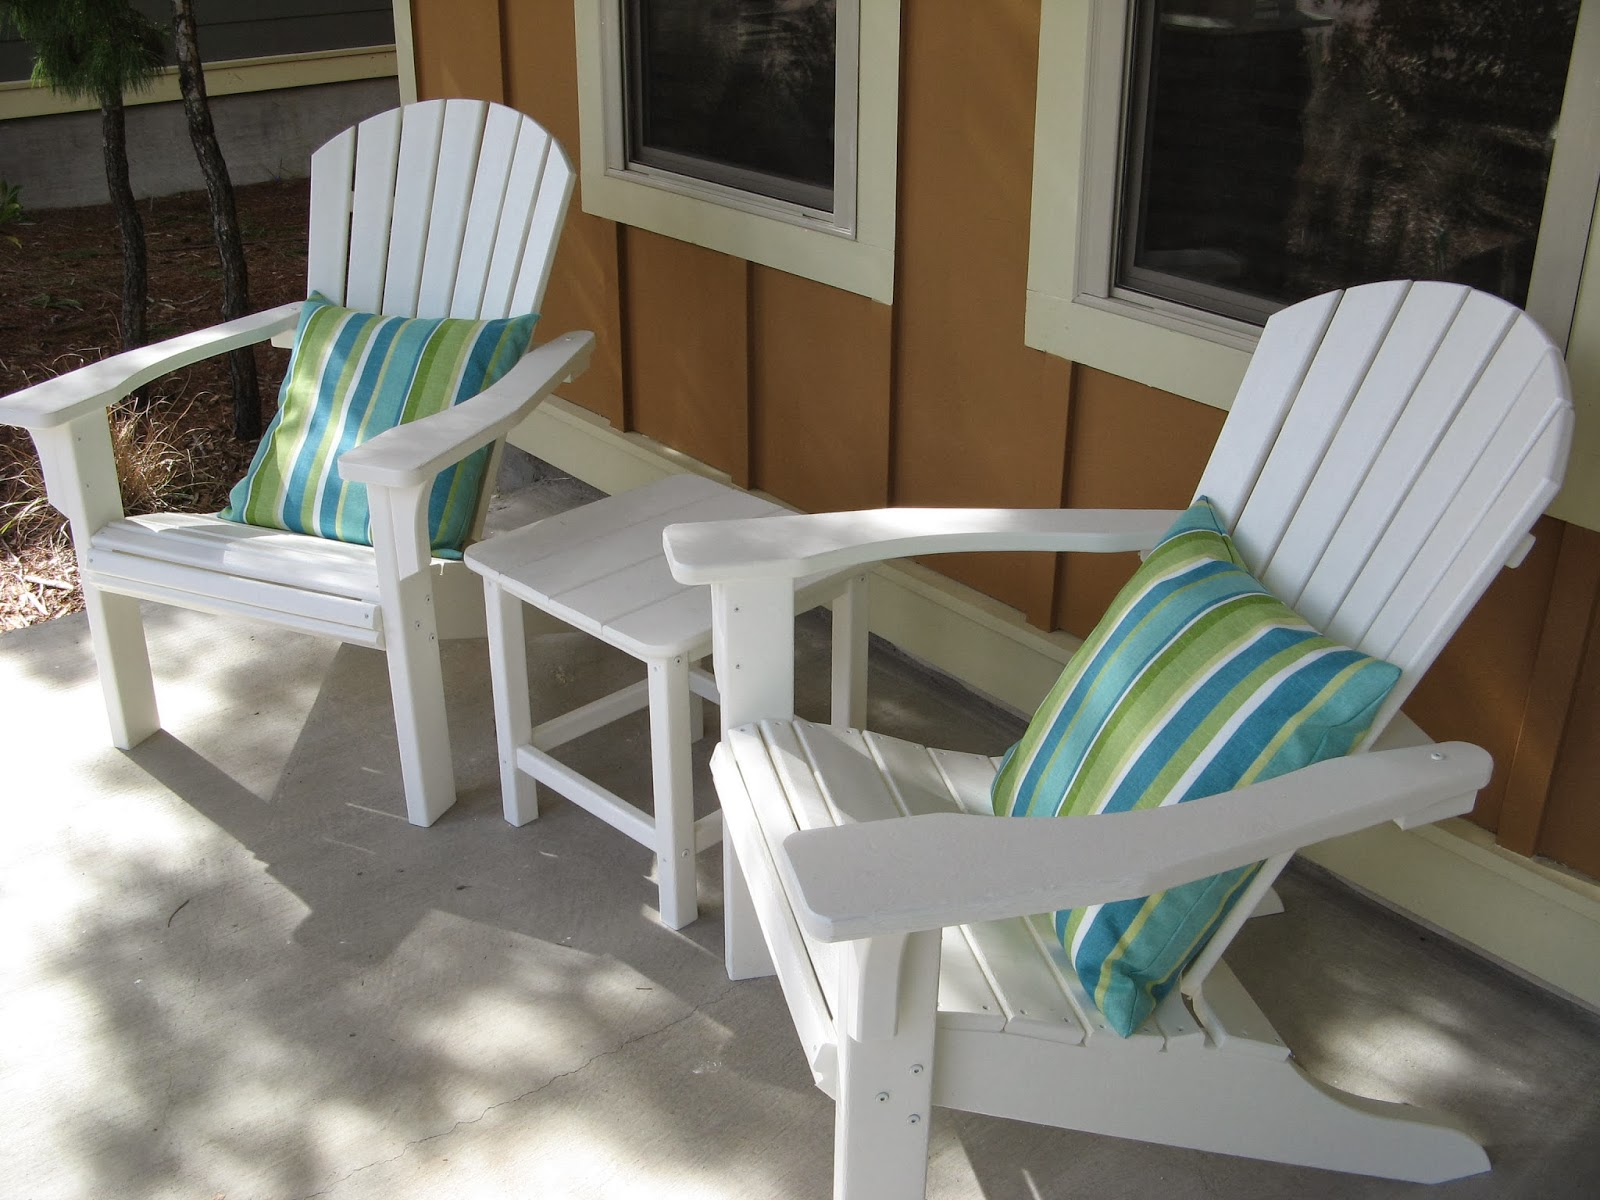 Adirondack chair pillows with ties